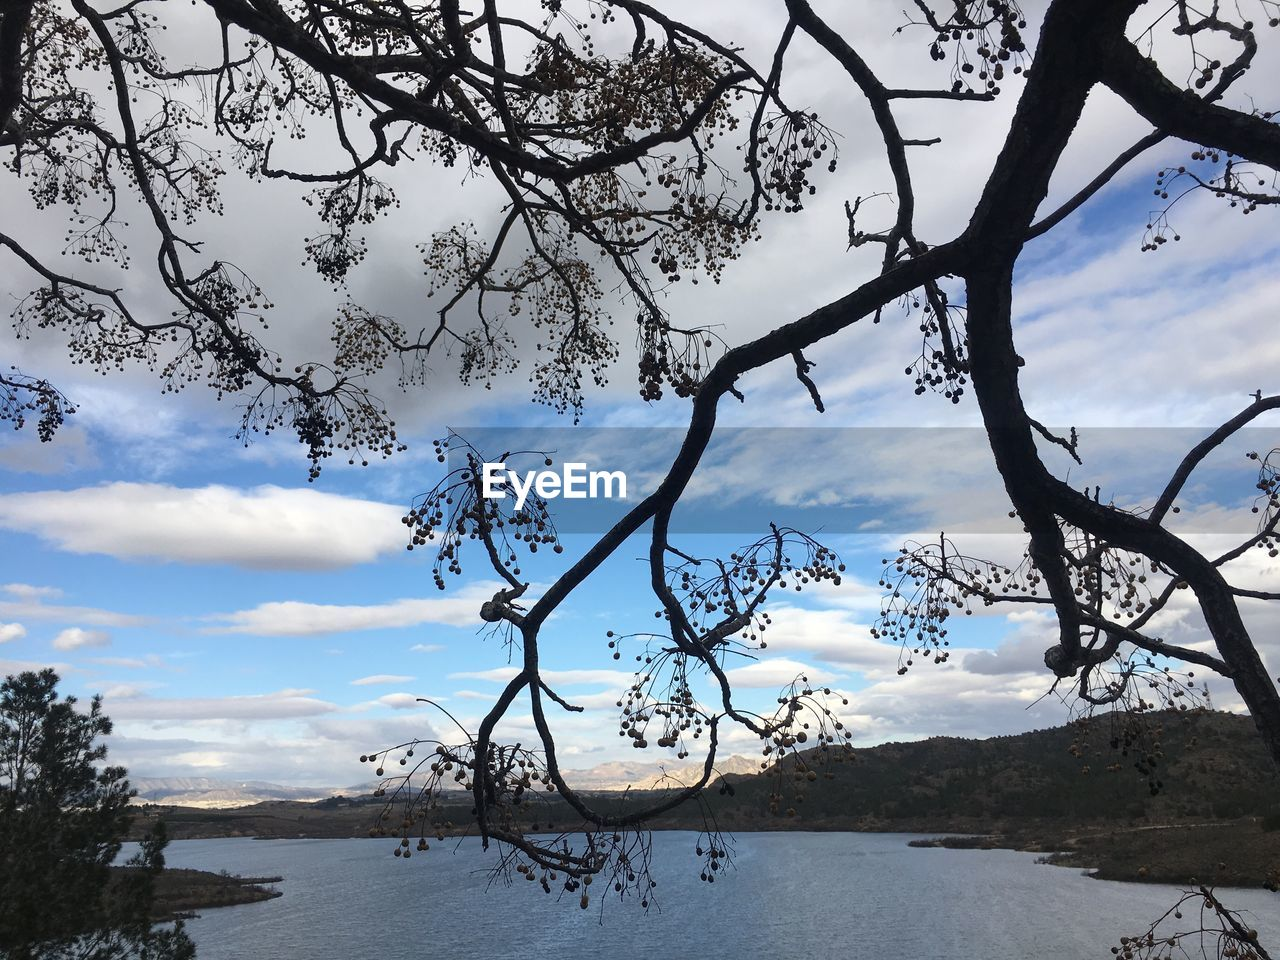 tree, nature, sky, beauty in nature, branch, cloud - sky, tranquility, scenics, tranquil scene, outdoors, no people, growth, lake, day, landscape, low angle view, mountain, water, flower, close-up